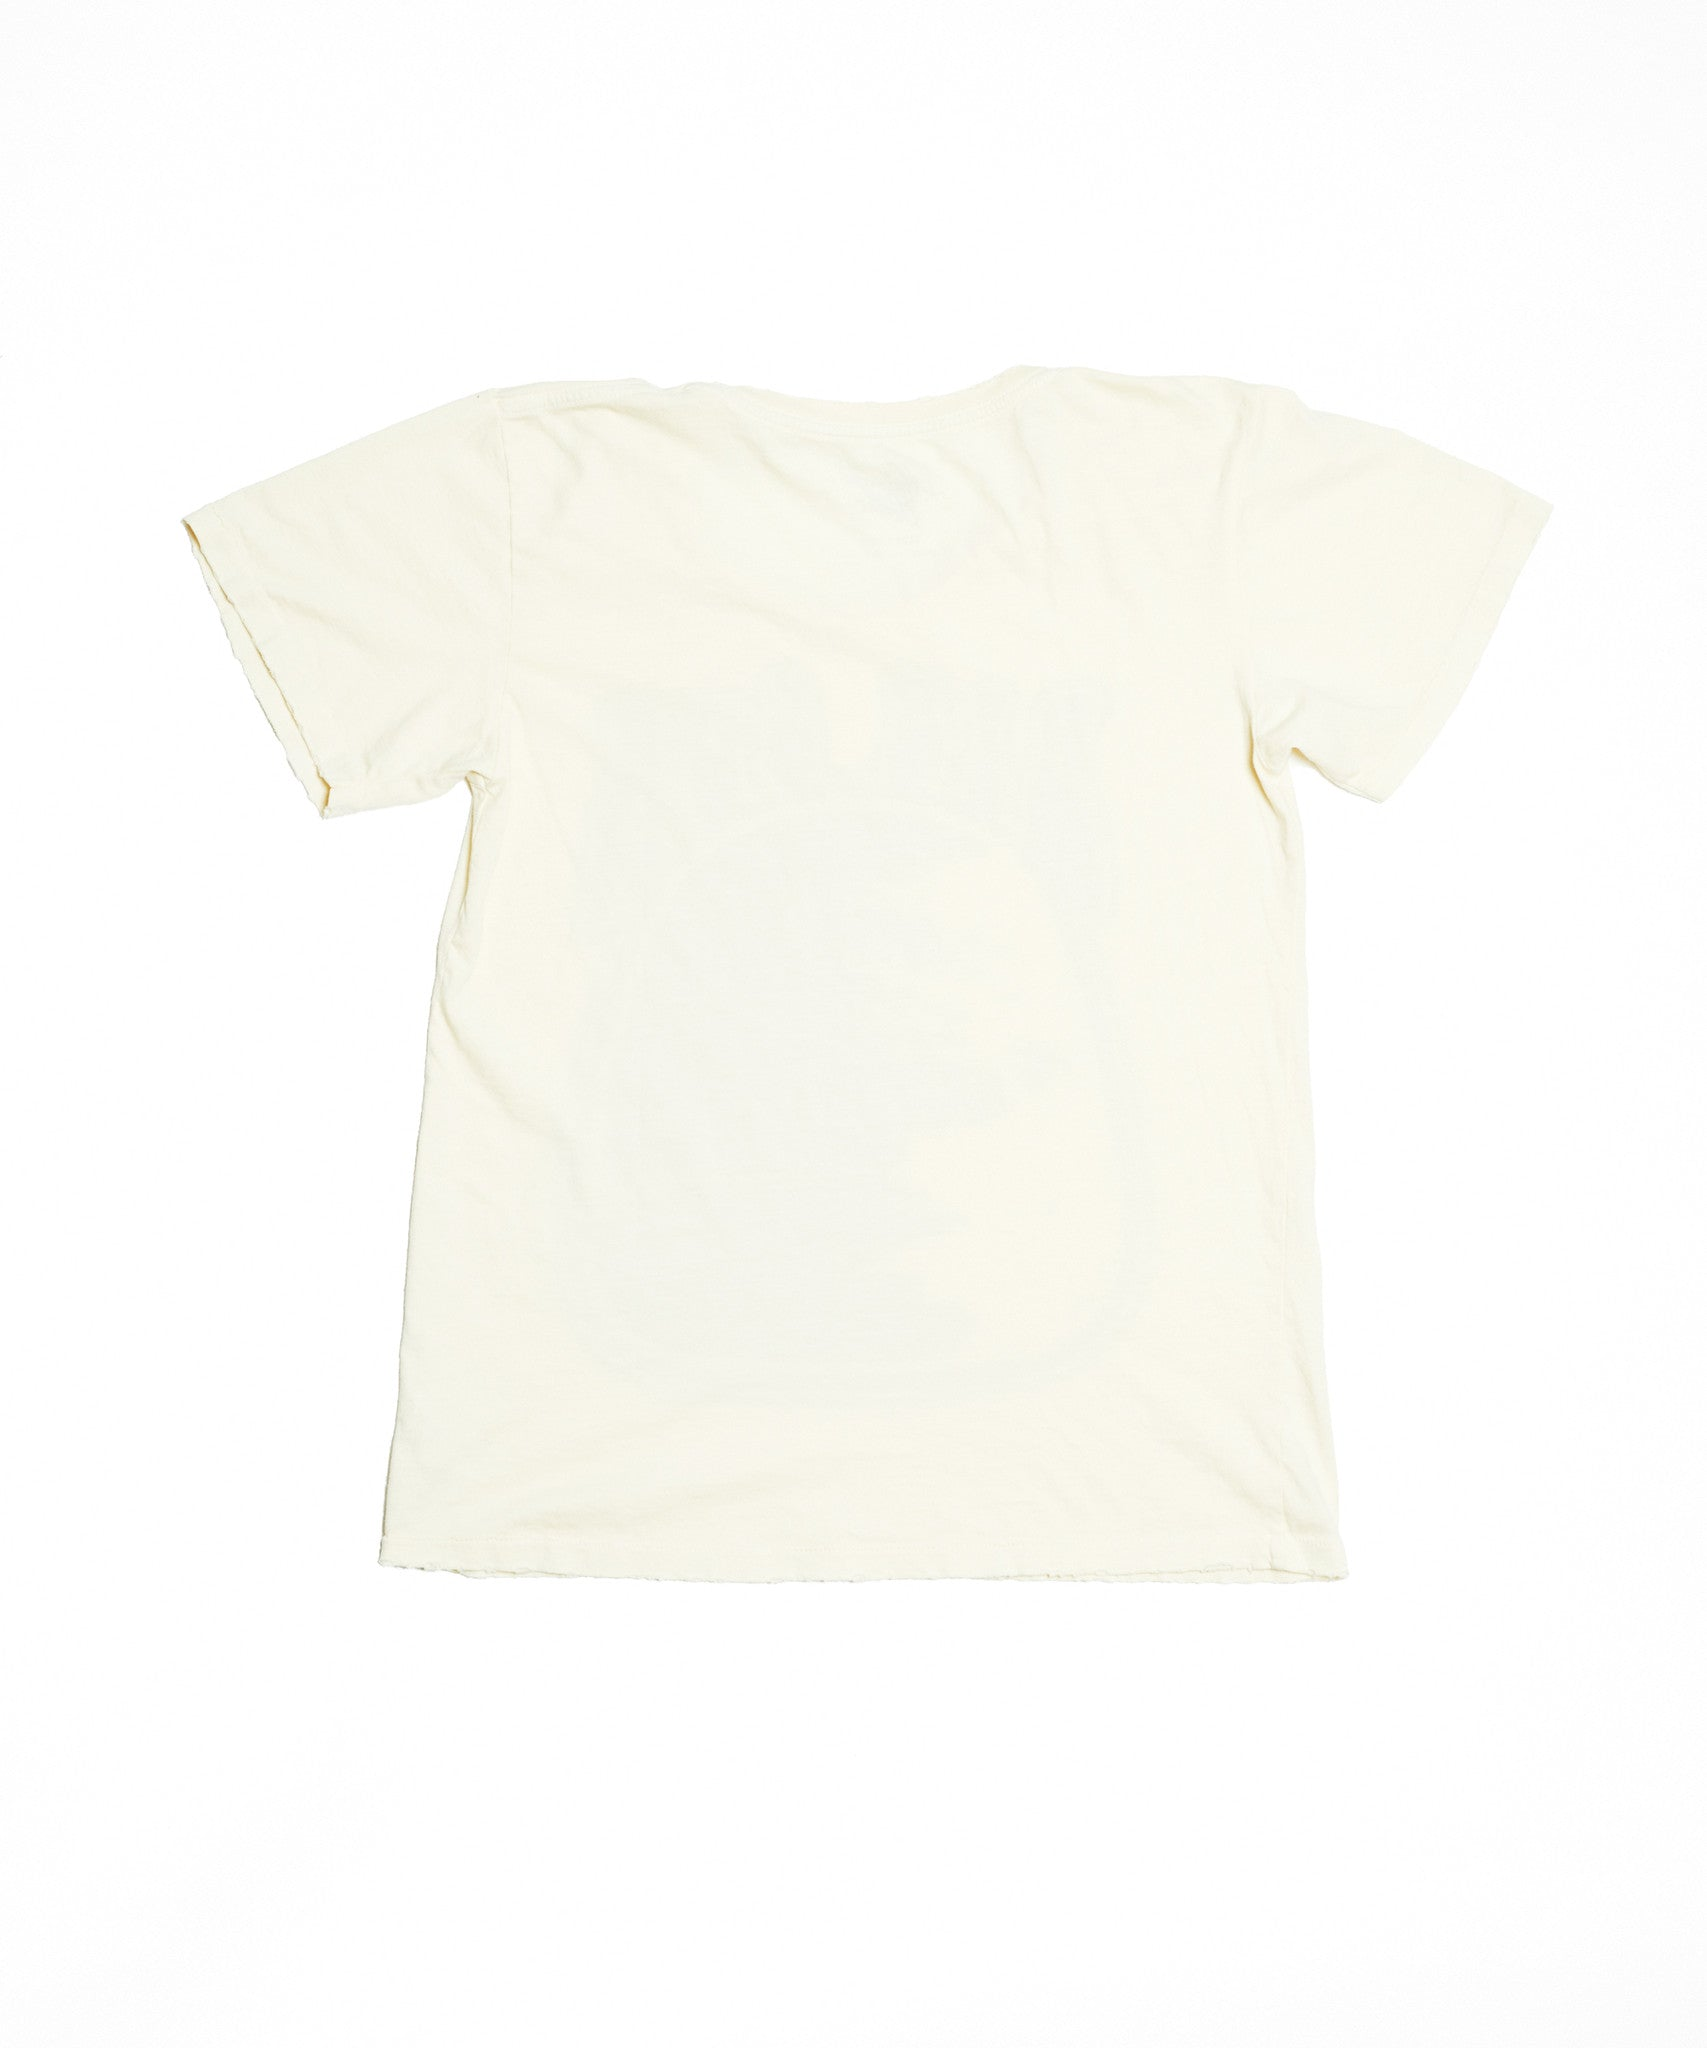 Big Sur Women's Crew - Dirty White - Women's Tee Shirt - Midnight Rider